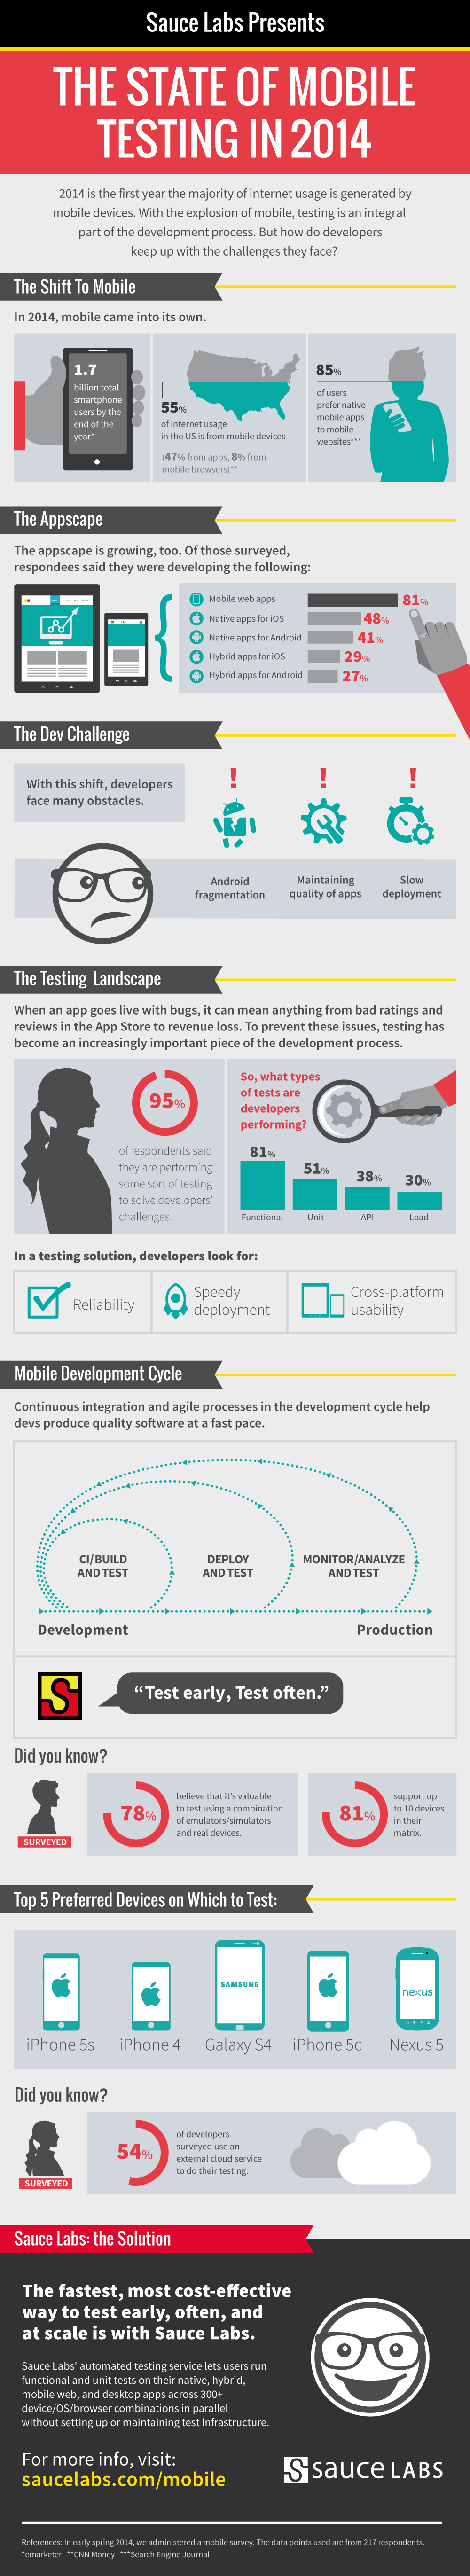 Mobile_Infographic_5-30-14b (1)